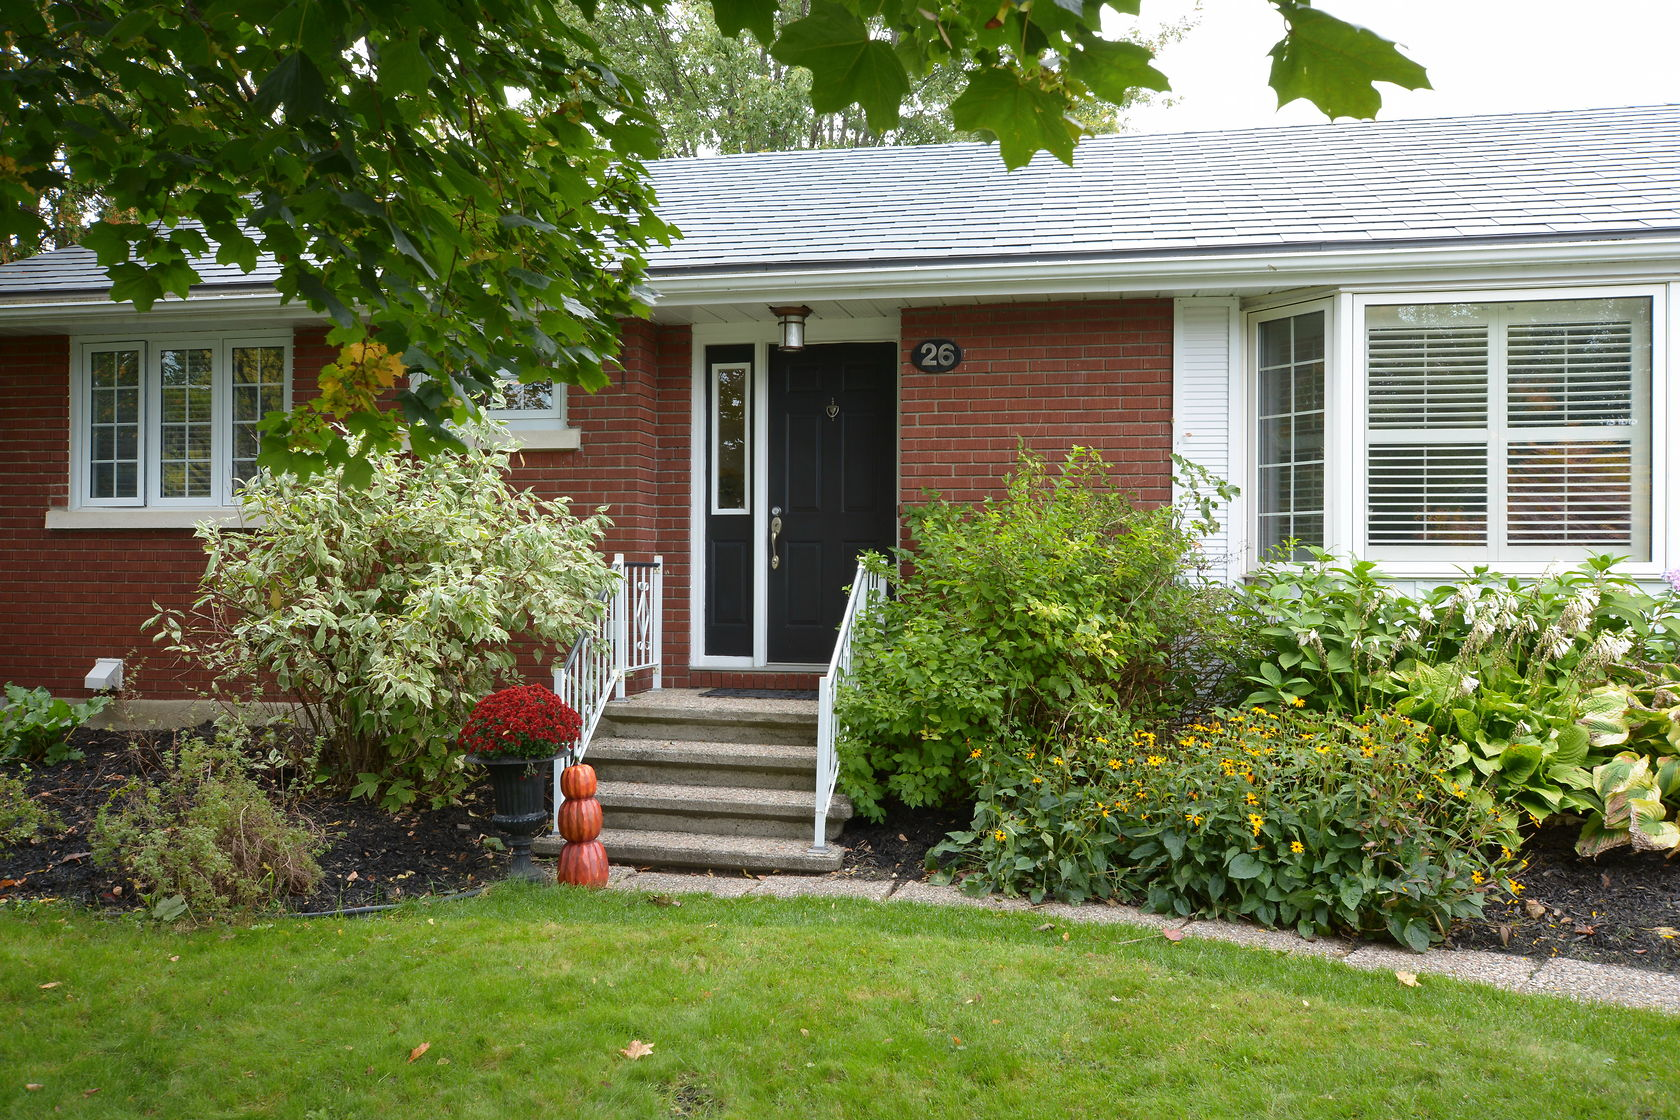 26 Roundhay Dr - Beautifully Landscaped Bungalow with Finished Basement in Manordale area!